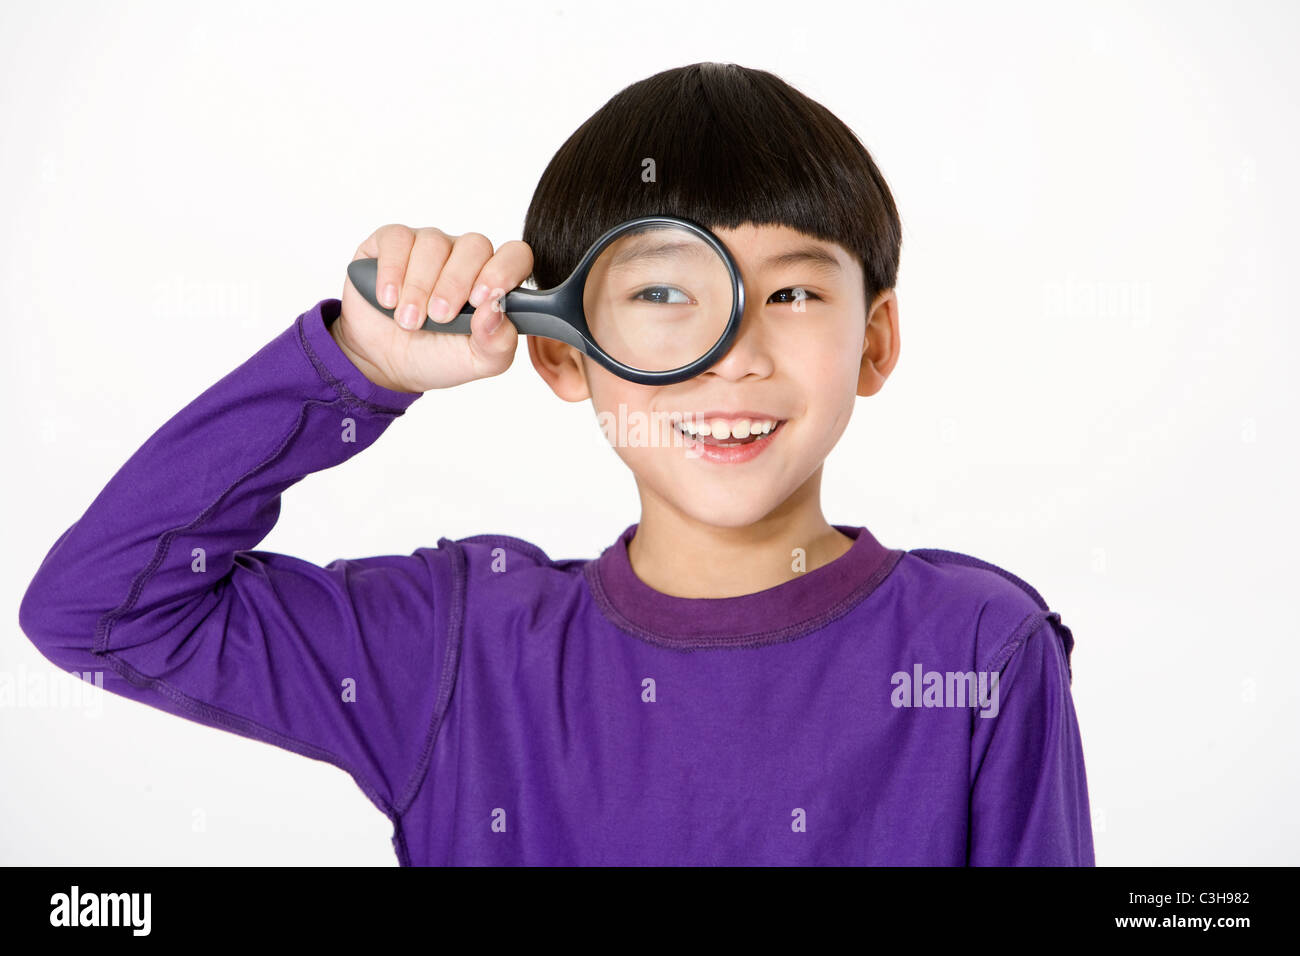 Young boy holding a magnifying glass up to his eye - Stock Image